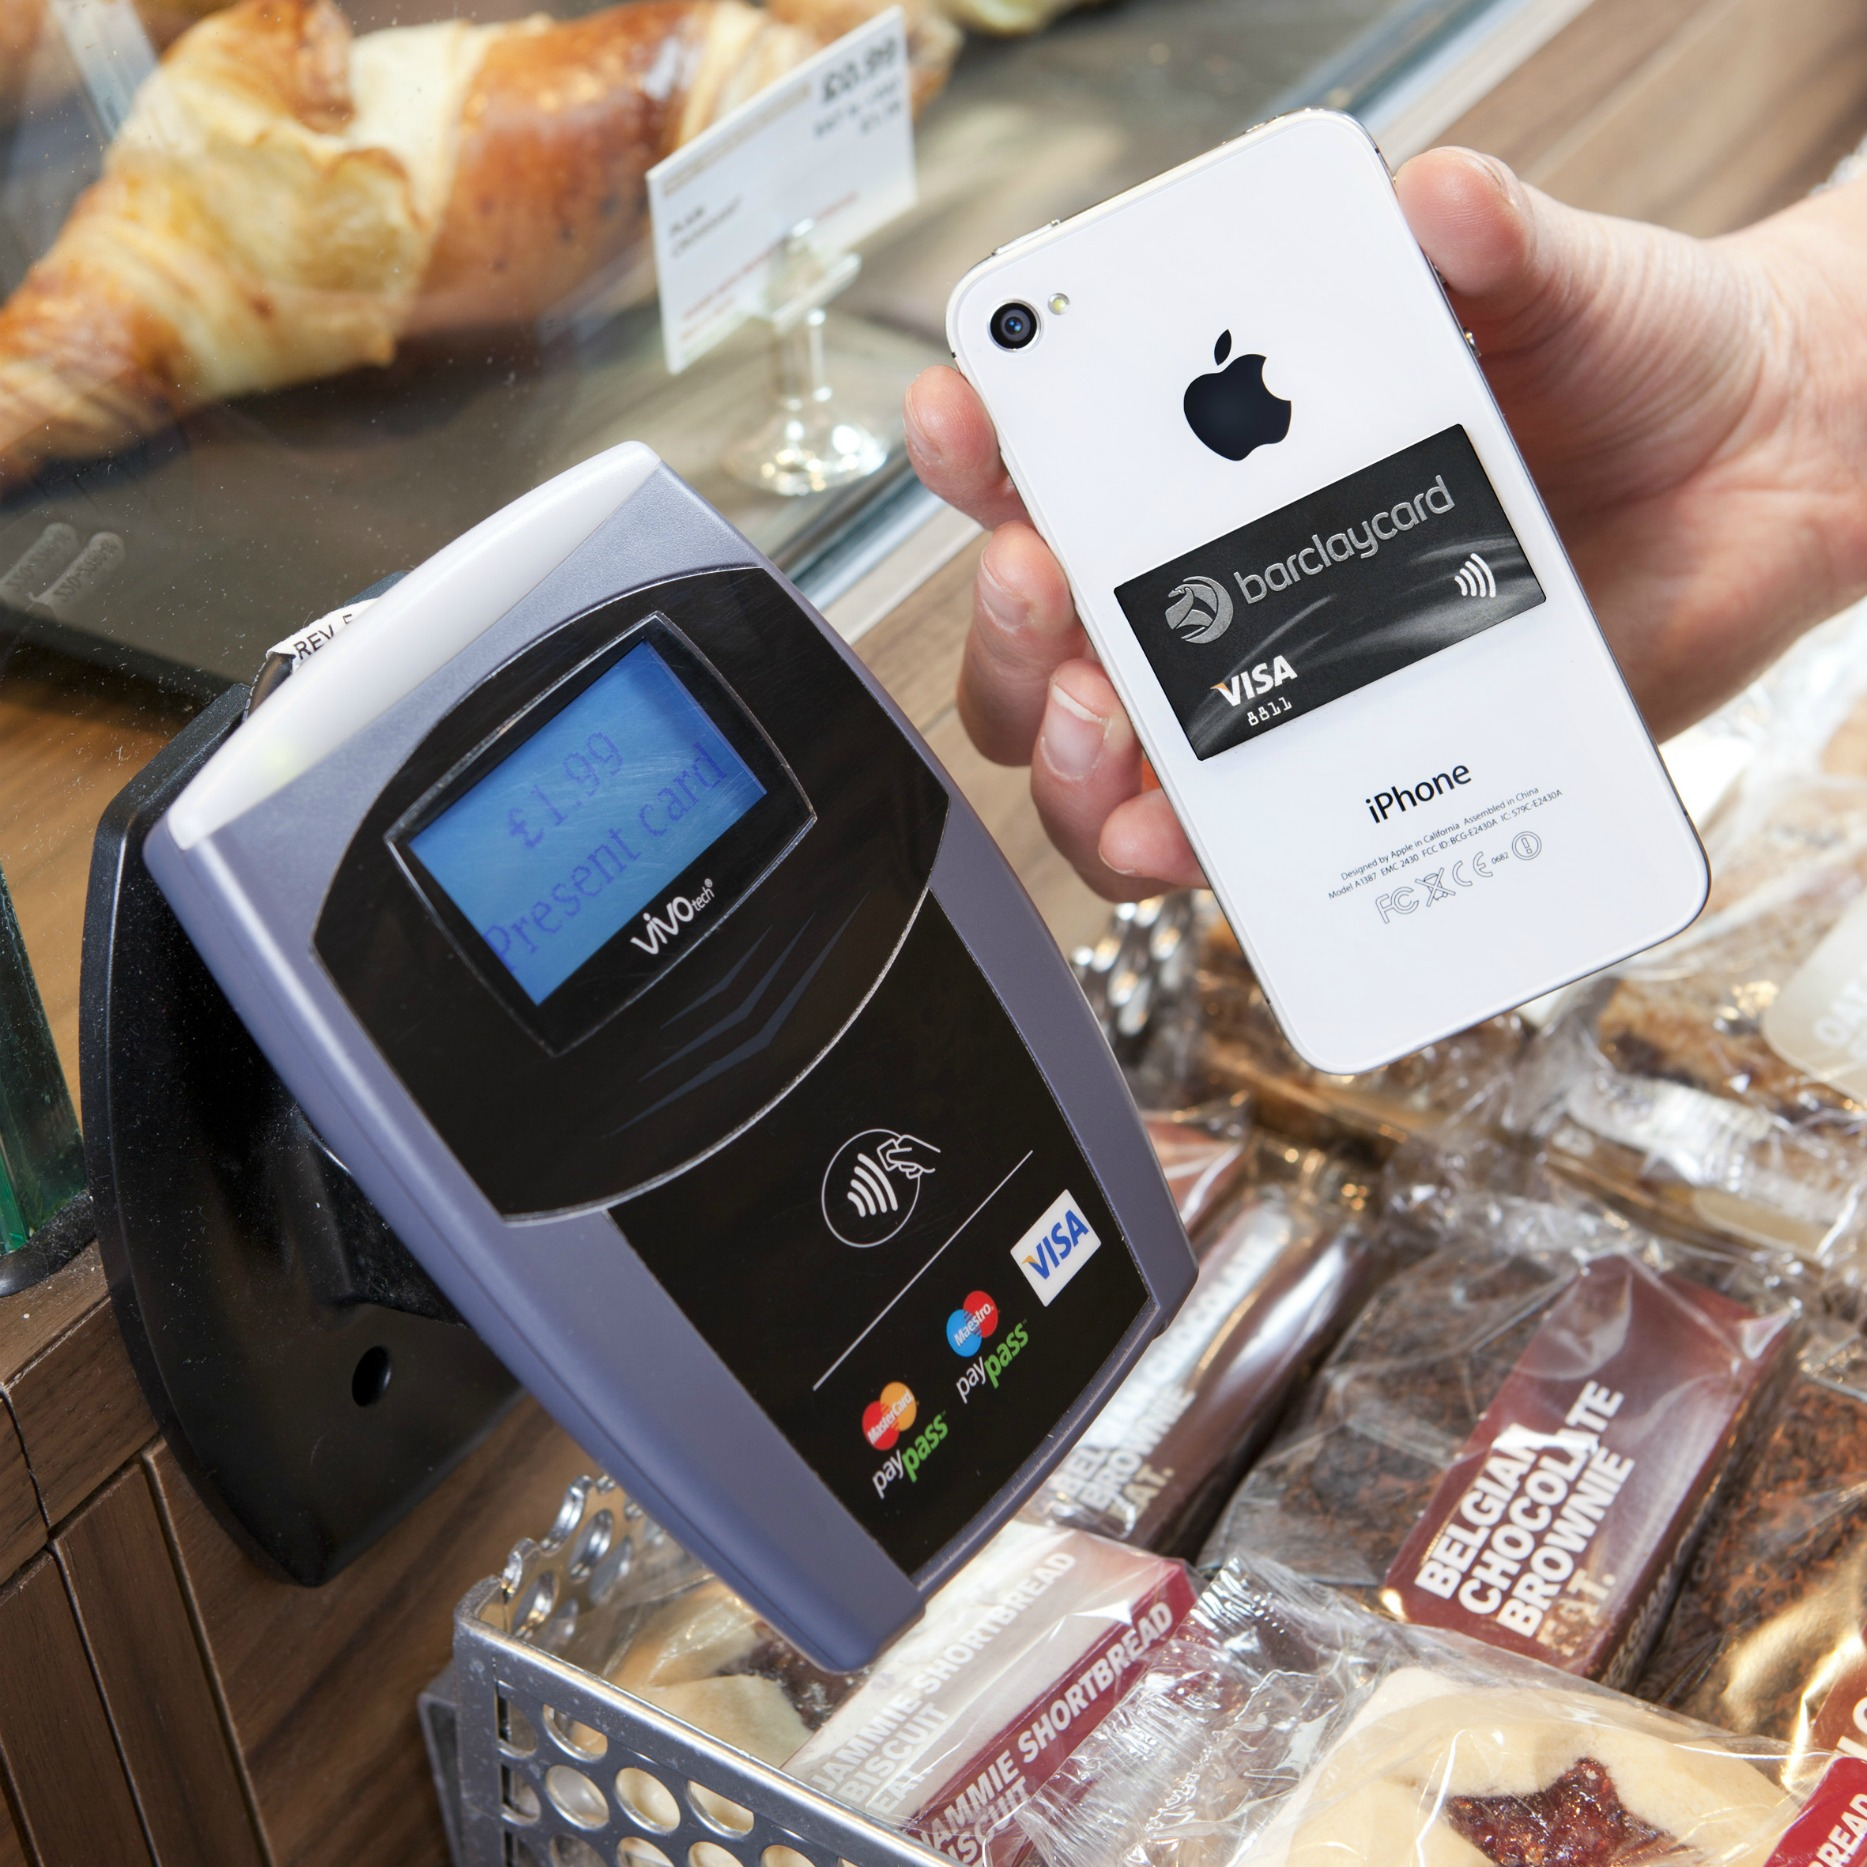 Barclaycard introduces contactless 'PayTag'